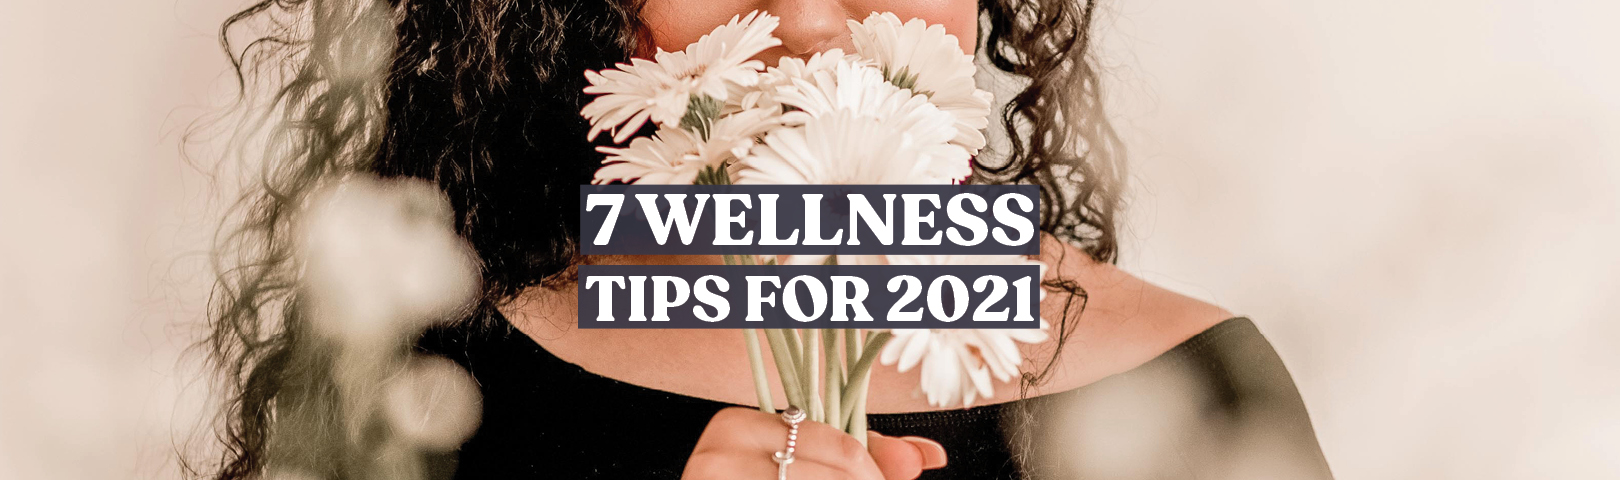 wellness tips for 2021